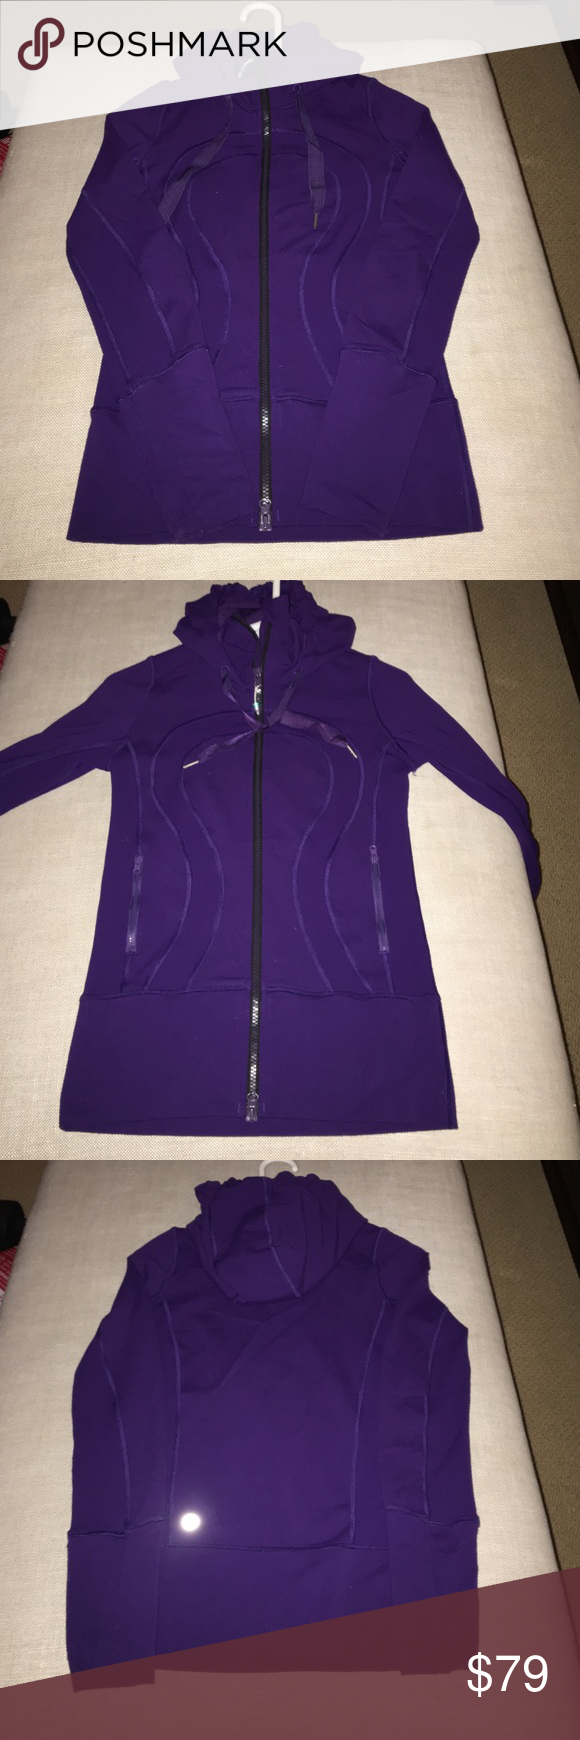 Lululemon Athletica Hooded Stride Jacket Lulu Stride jacket , fitted , size 2, beautiful deep shade of purple, has collar that can zip all the way up the neck for extra warmth , hood, slightly longer to keep rear warm ..excellent condition, barely worn lululemon athletica Jackets & Coats